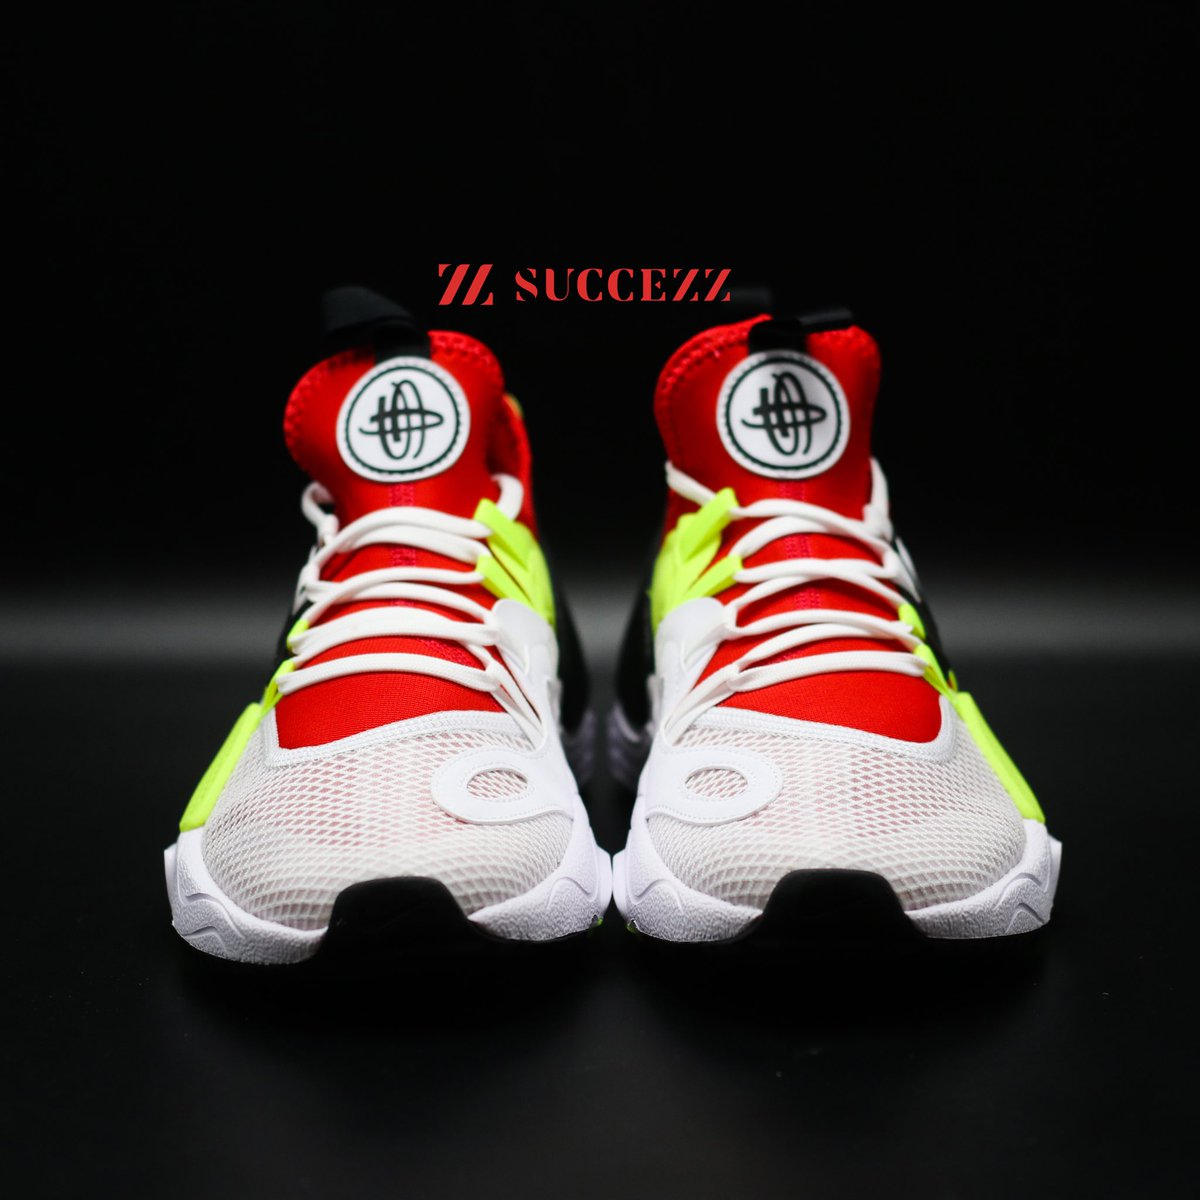 premium selection 046c2 a79e7 PayPal Orders l Accepted Call For More Info  zZ  SuccezZ  Chicago  Huarache   Edge  MotorRow  Nikepic.twitter.com vfxSUAorvf